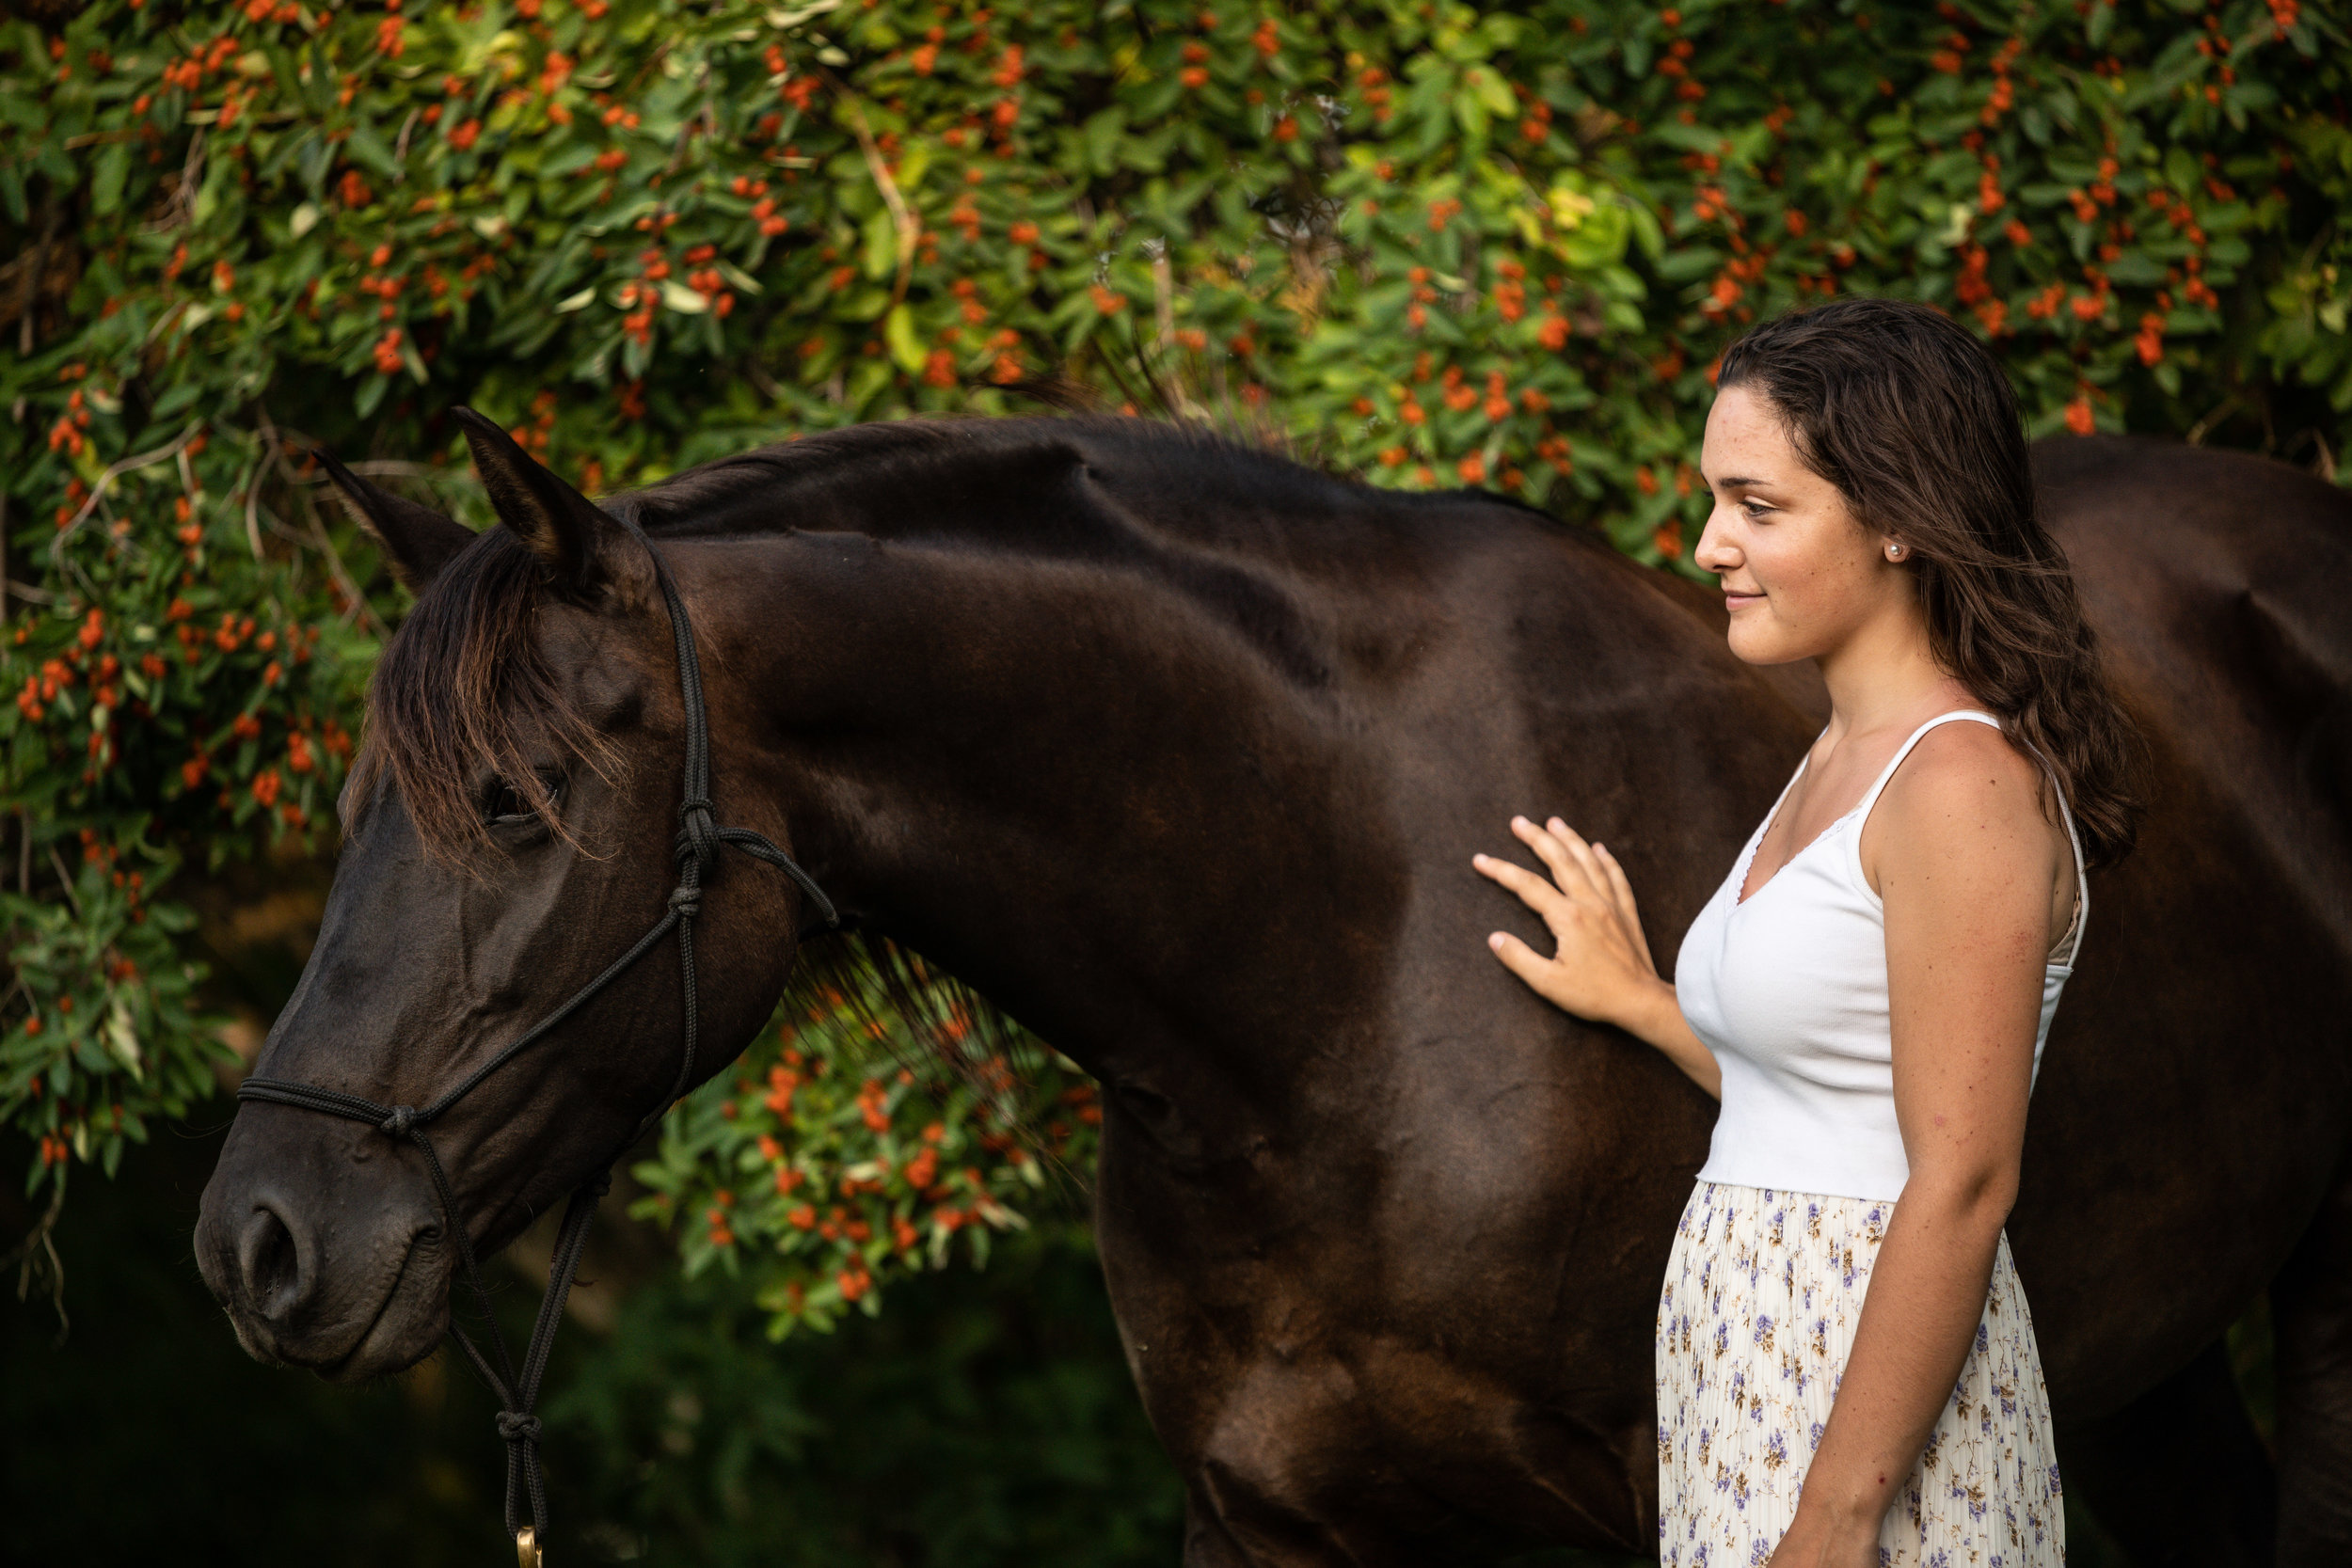 Canadian mare and girl equestrian portrait